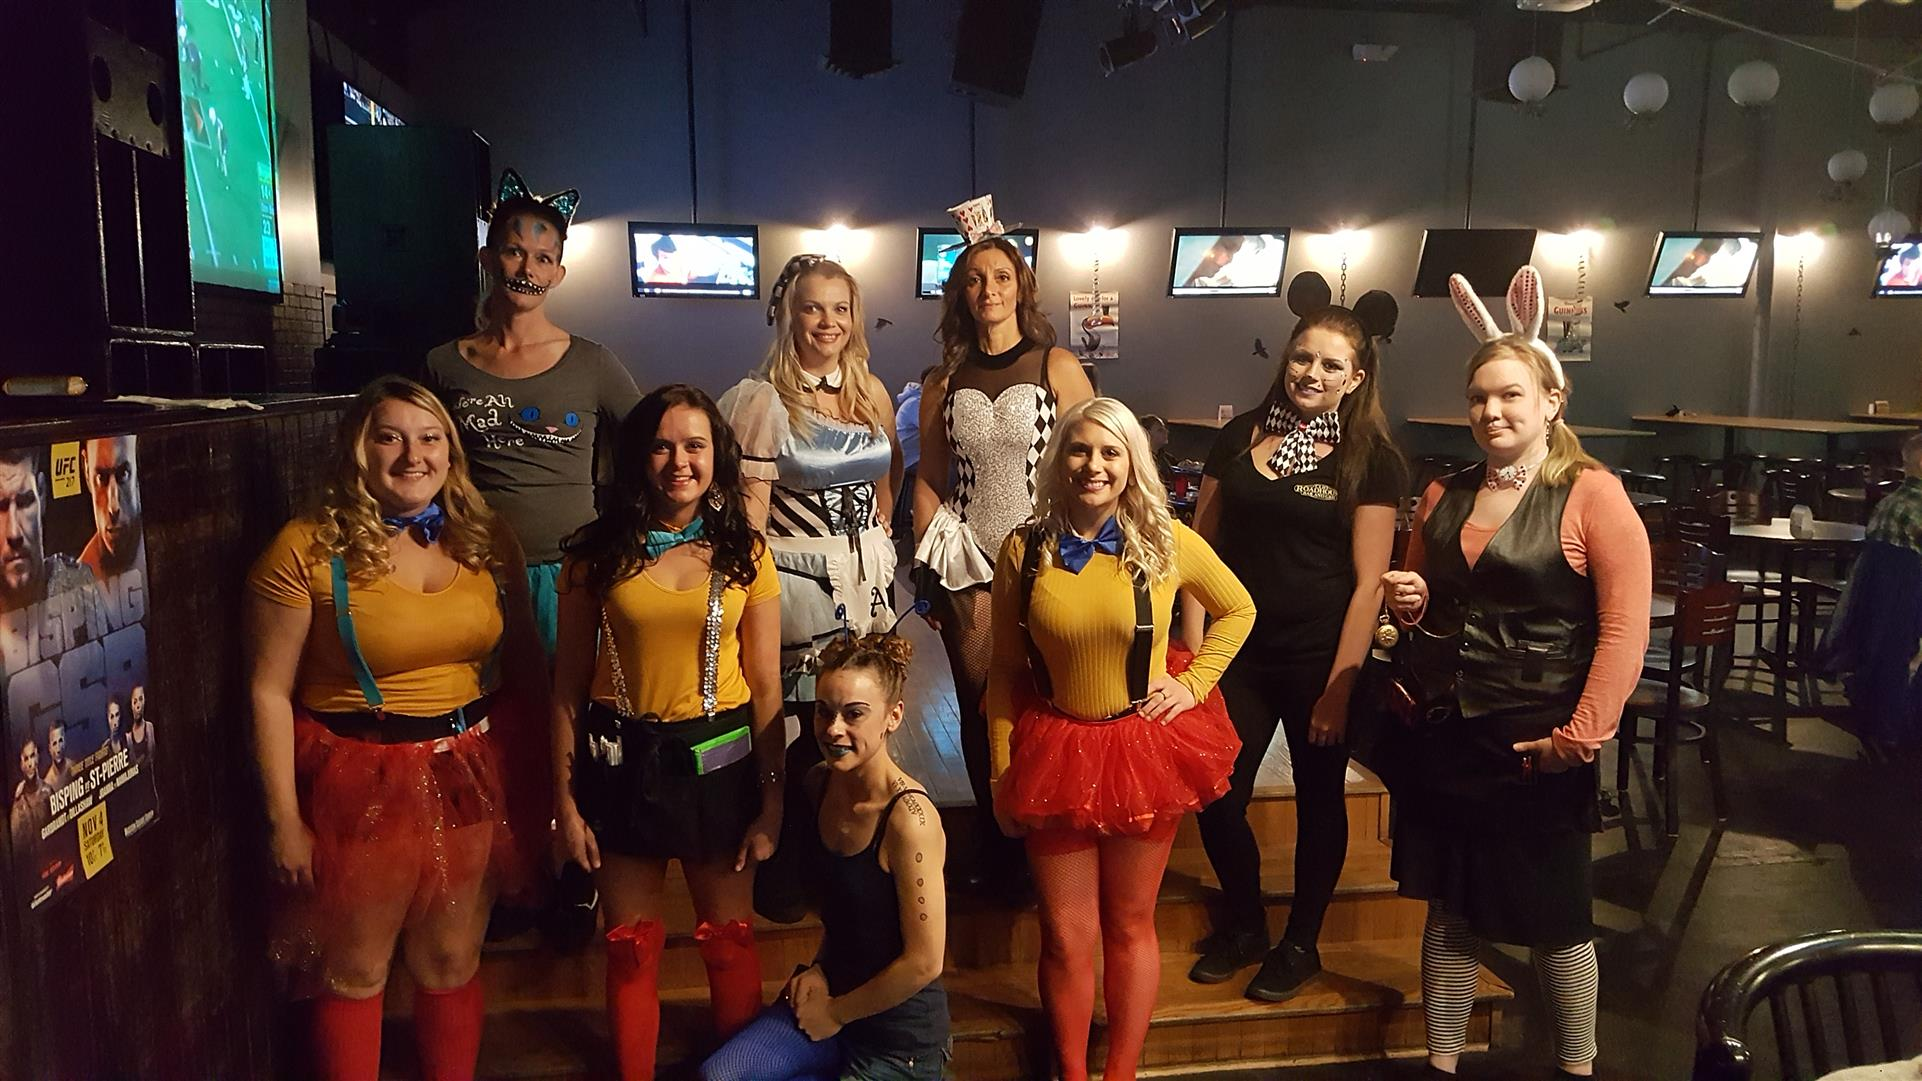 group of people in halloween costumes posing for a picture